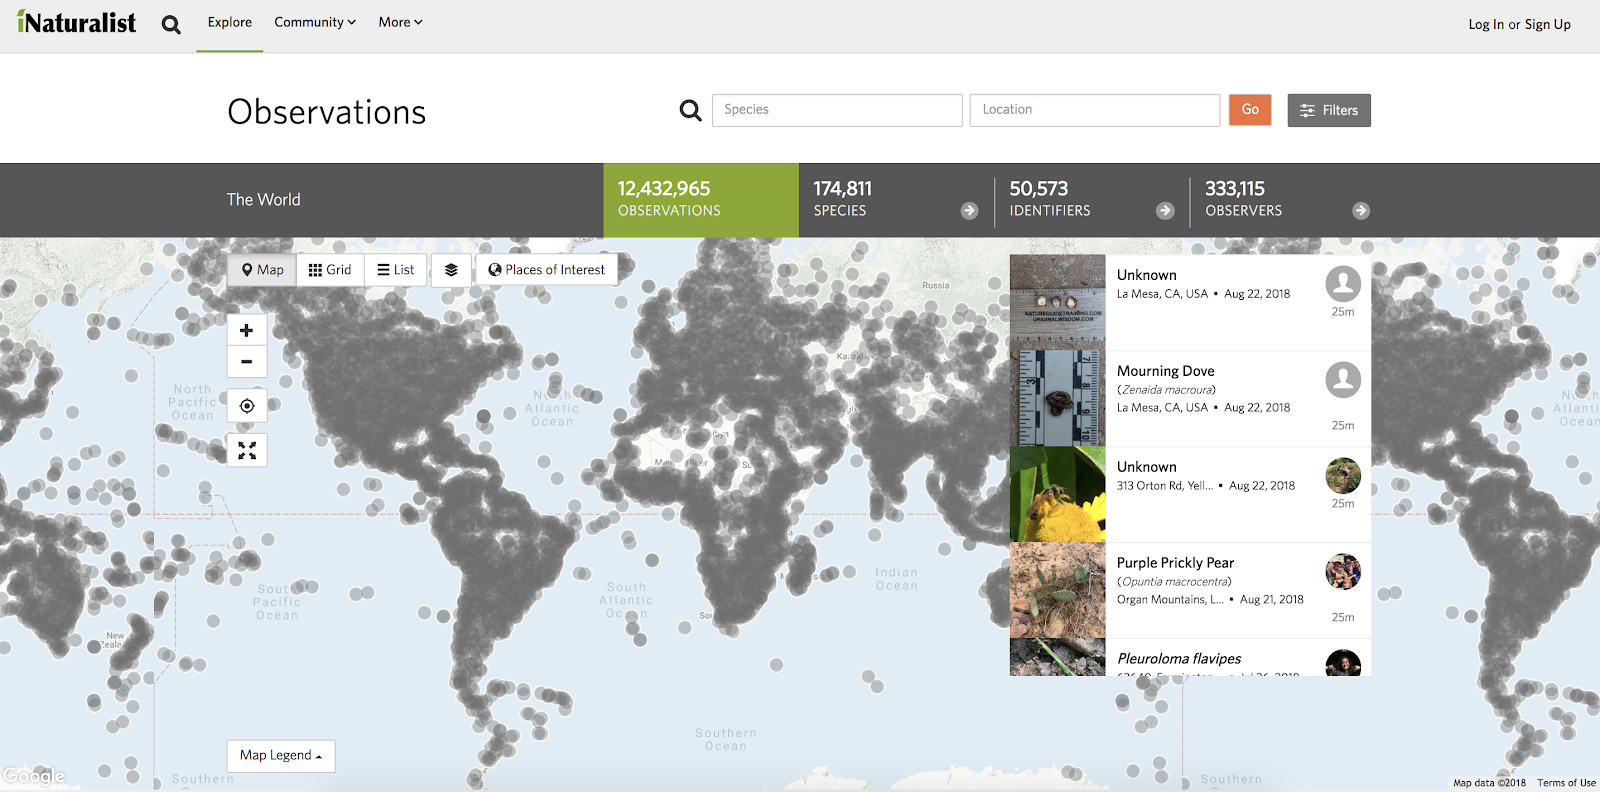 Google Maps Platform credits now available for nonprofits ... on map for science, map for states, map for writing, map for realtors, map for students, map for cities, map for travel, map for transportation, map for business, map for economy, map for leadership, map for food, map for history, map for community, map for marketing, map for taxes, map for health care,